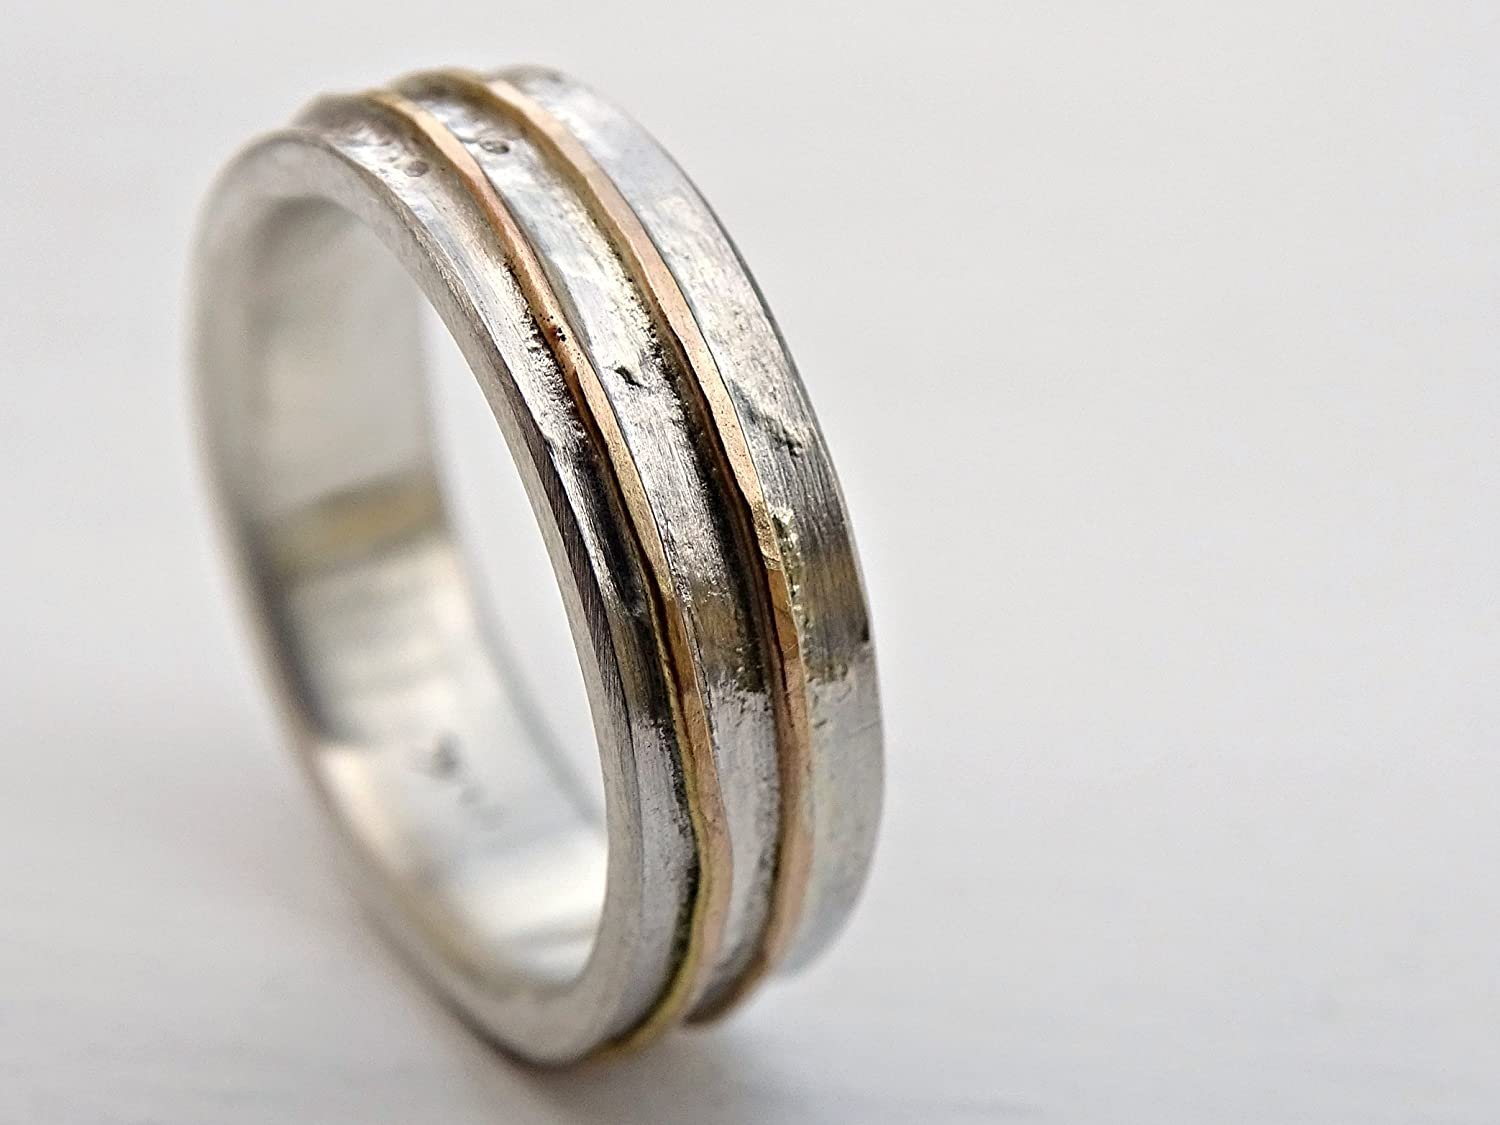 This is an image of Amazon.com: rustic wave ring gold silver, cool wedding band for